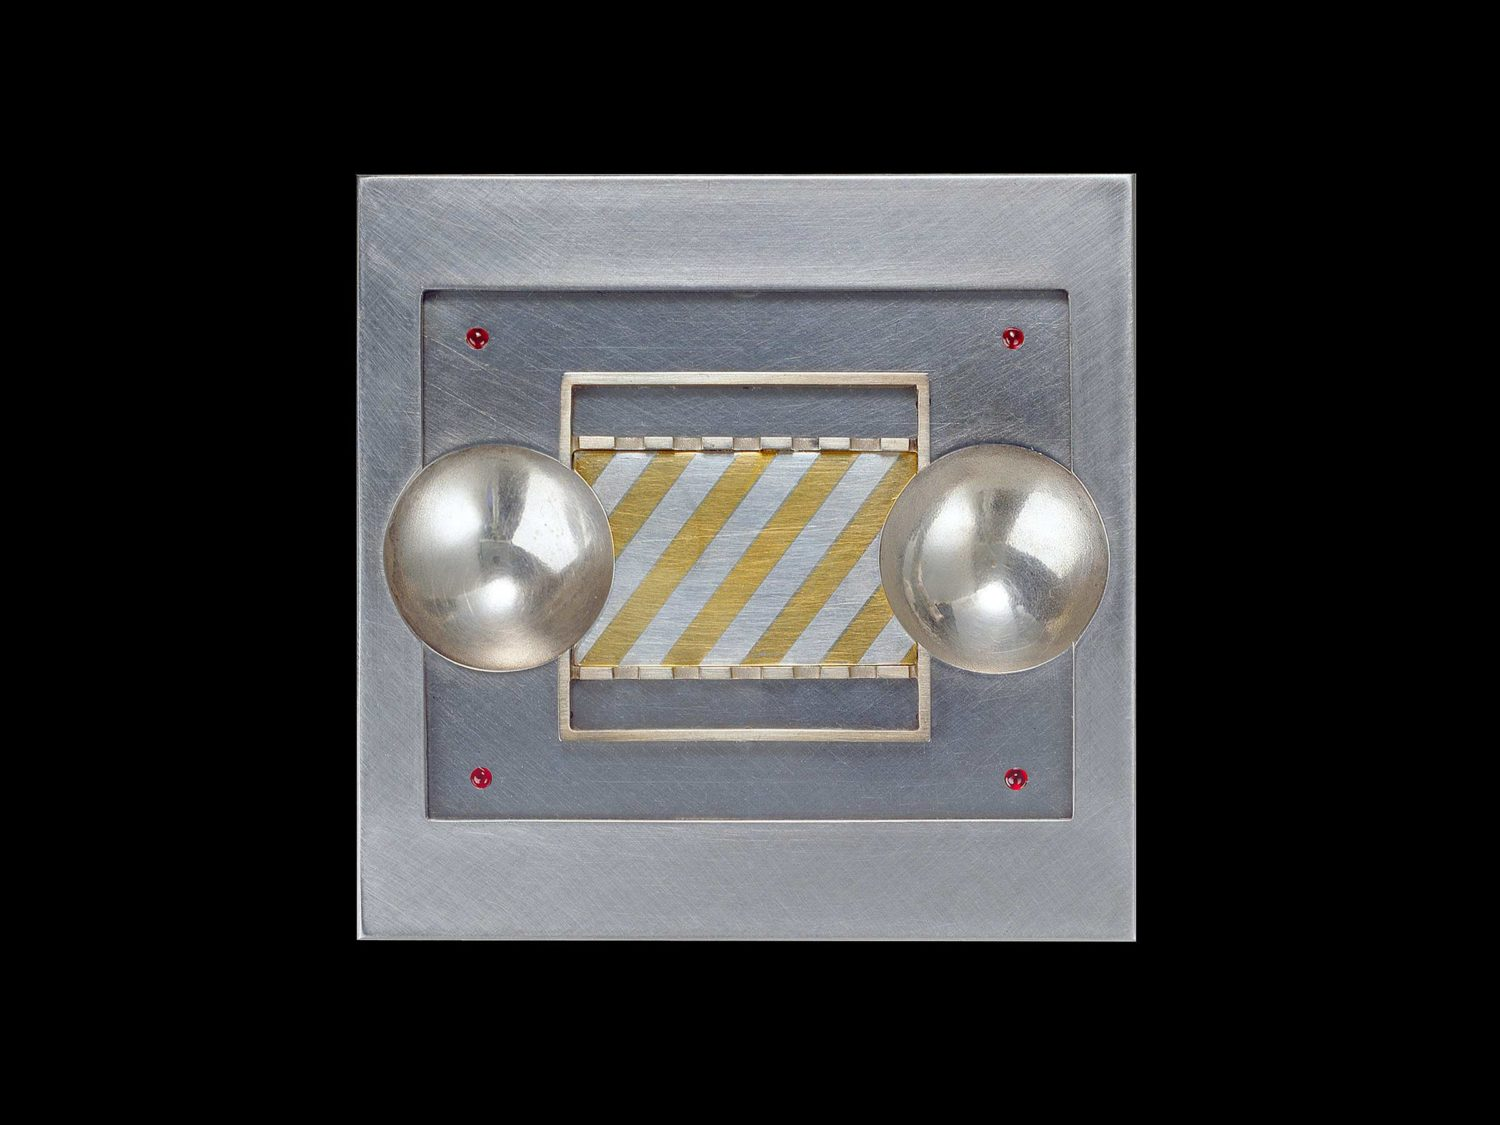 BROOCH, STAINLESS STEEL, SILVER, GOLD, RUBIES, 1971